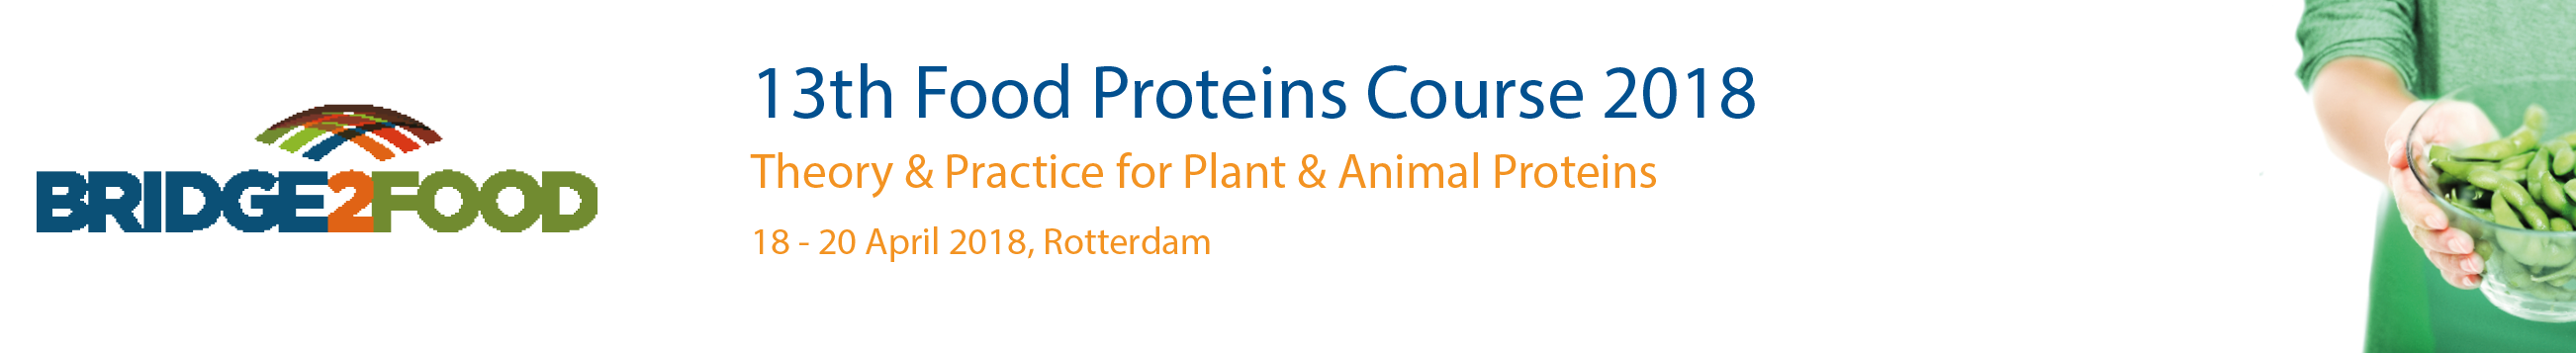 Bridge2Food - 13th Food Proteins Course 2018